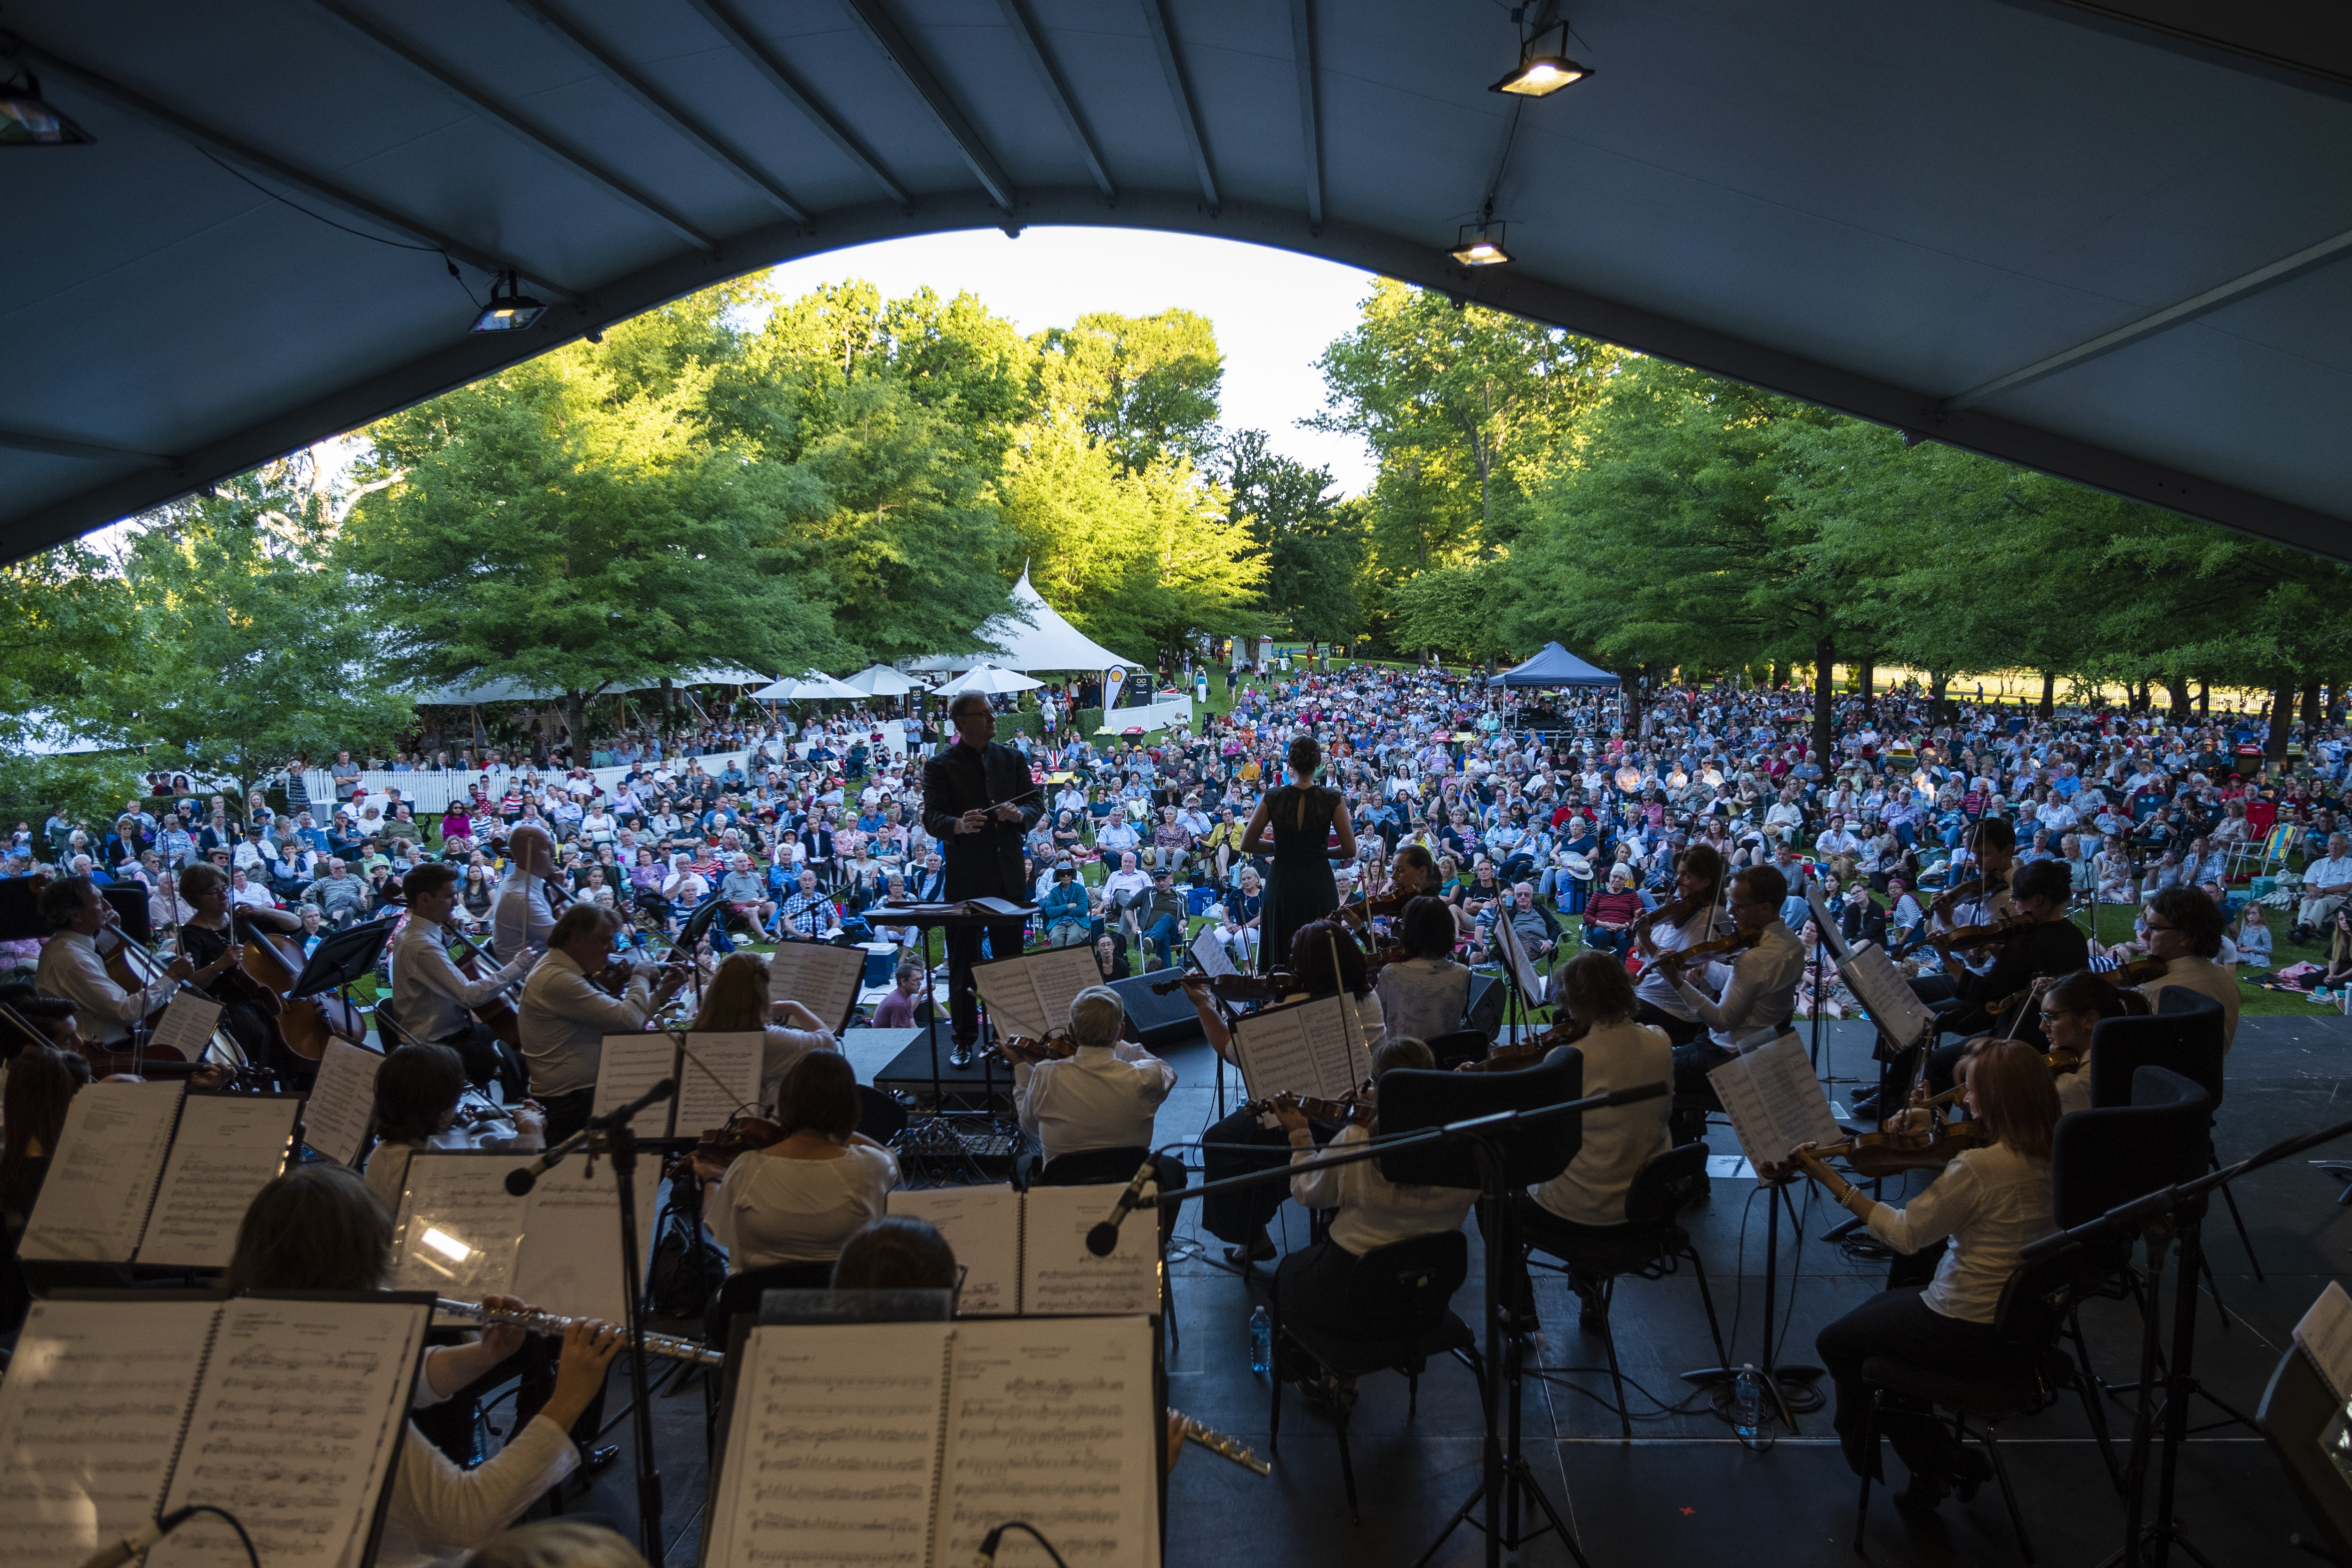 View from the stage, CSO 2018 Shell Prom